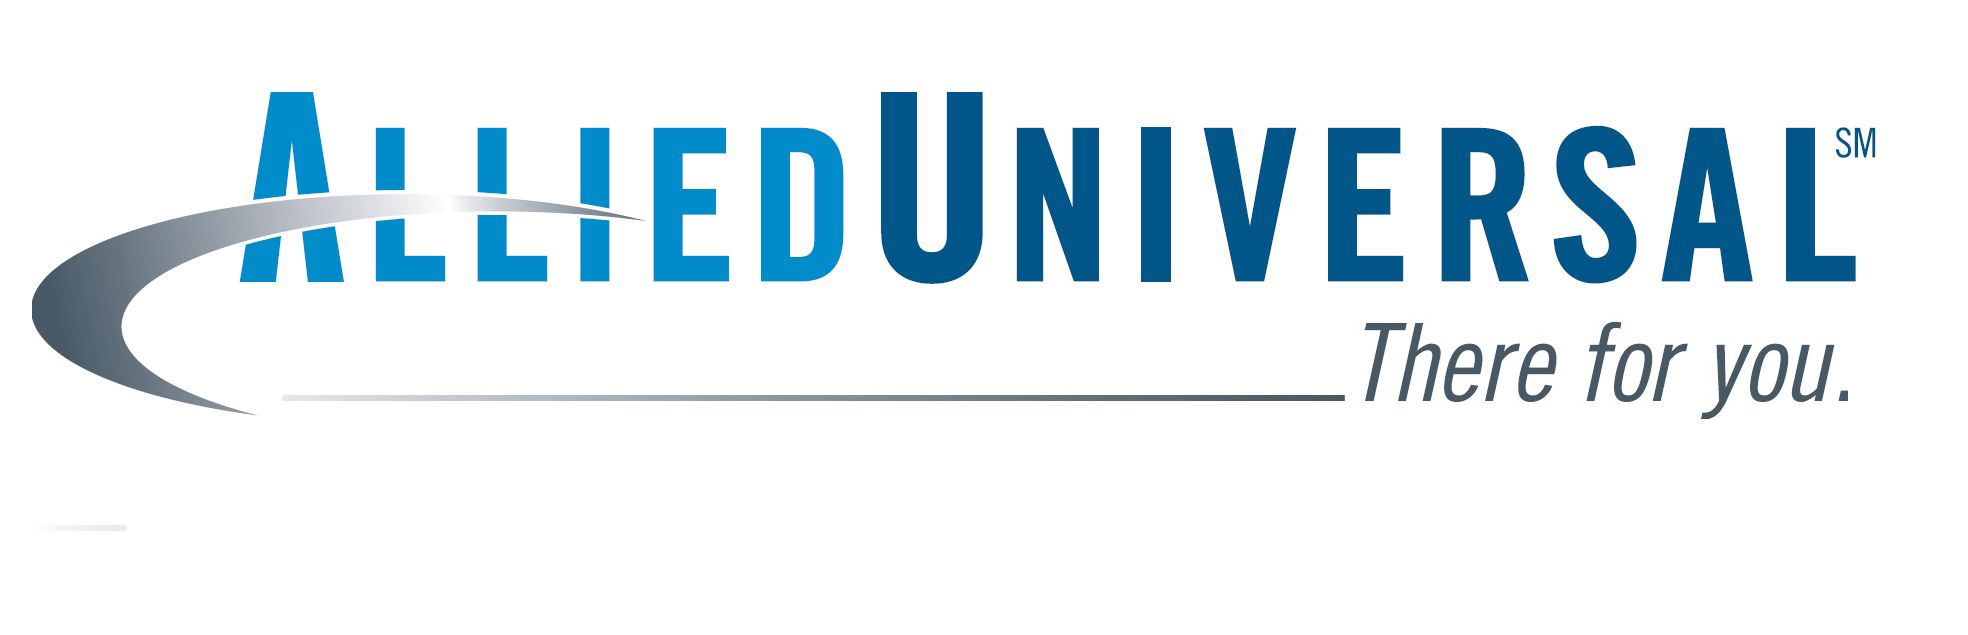 Sponsors - Admirals Cove Foundation Universal Pictures Logo